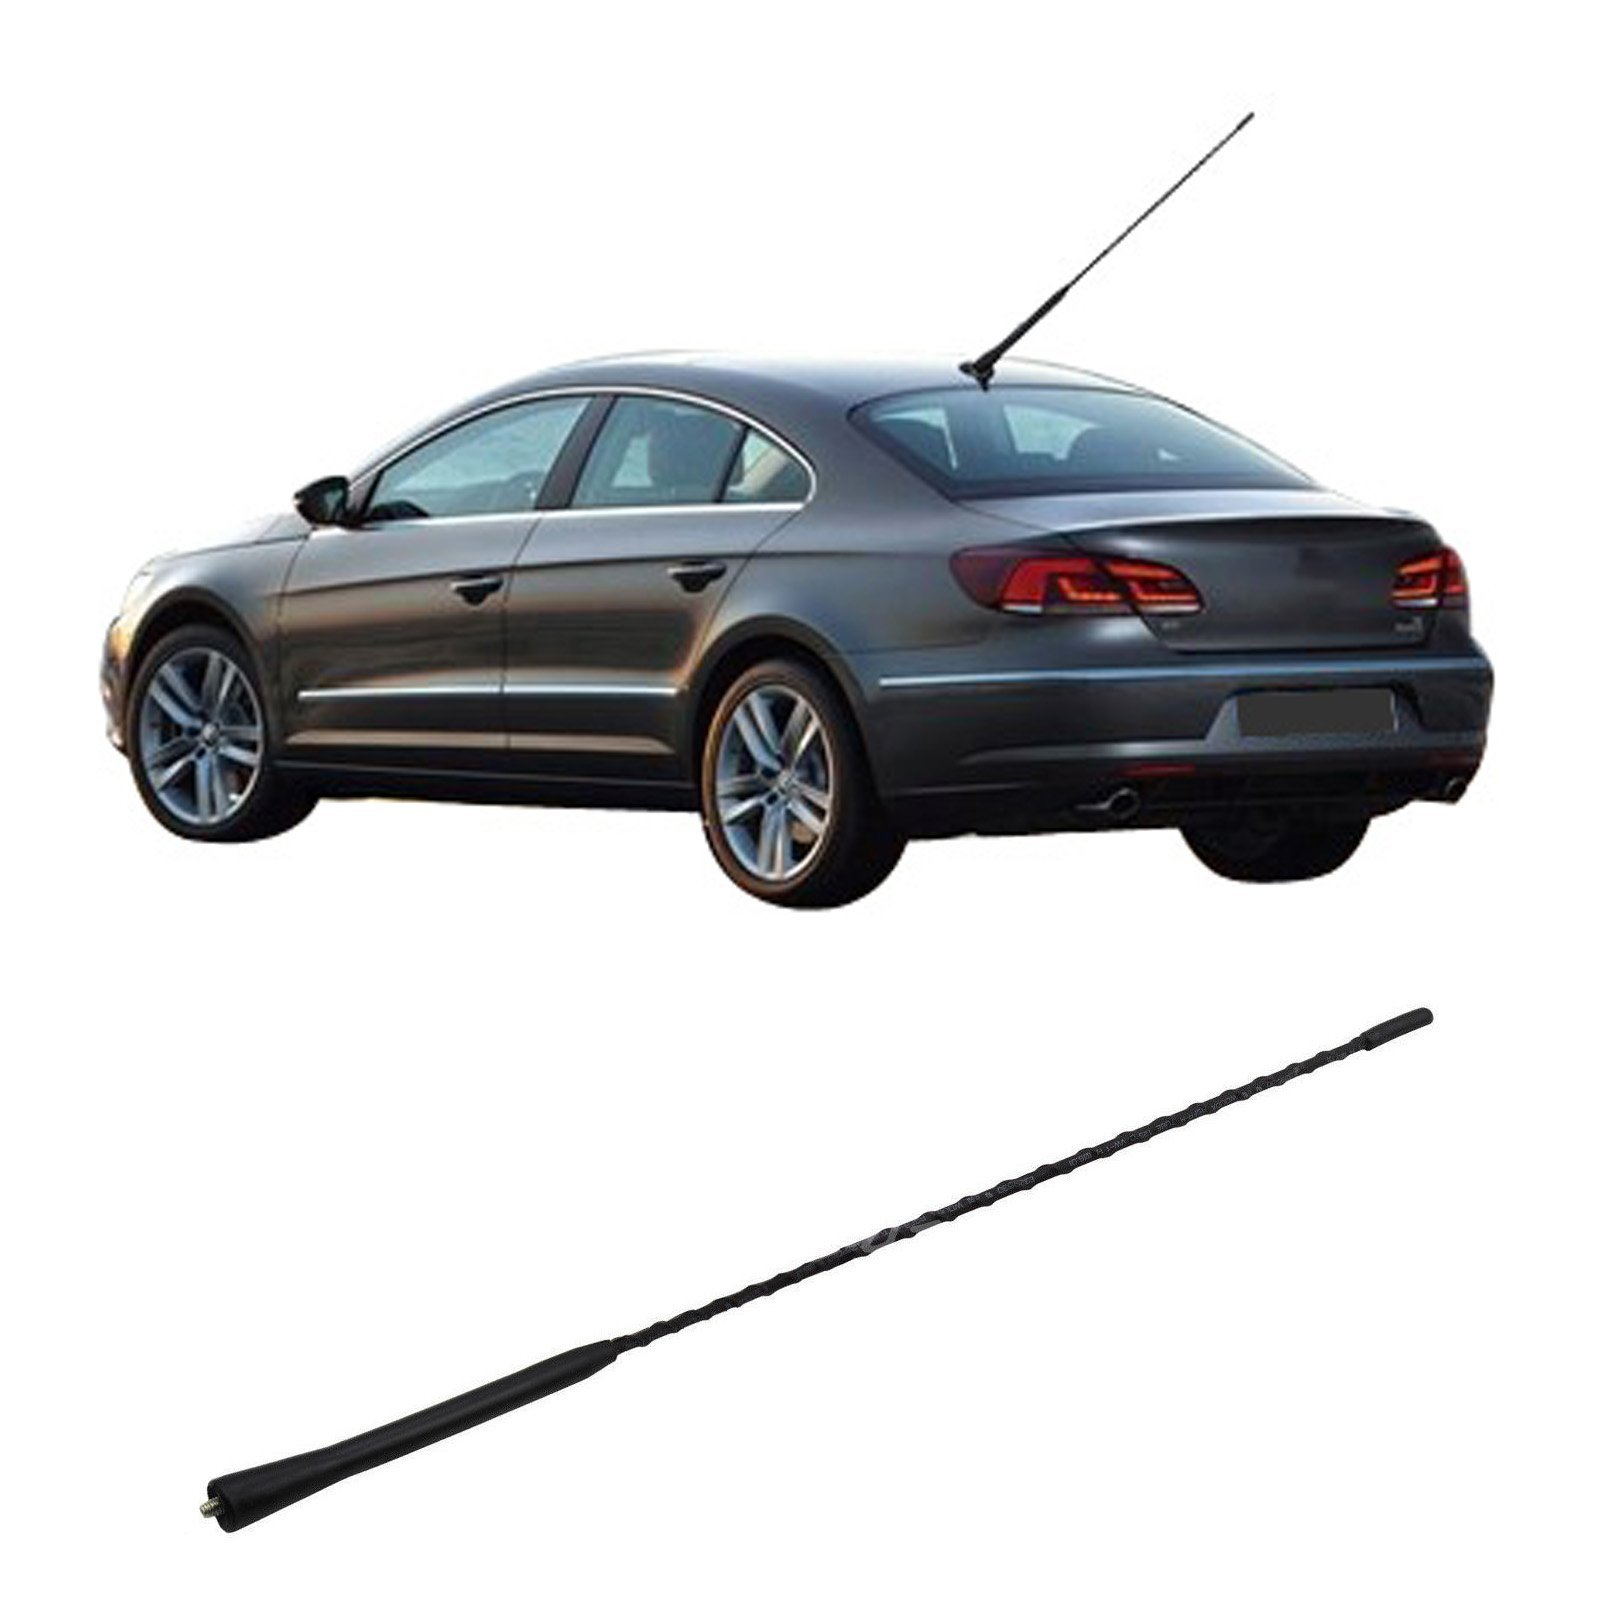 hight resolution of get quotations 16 antenna aerial radio replacement roof mast whip for vw jetta golf gti passat